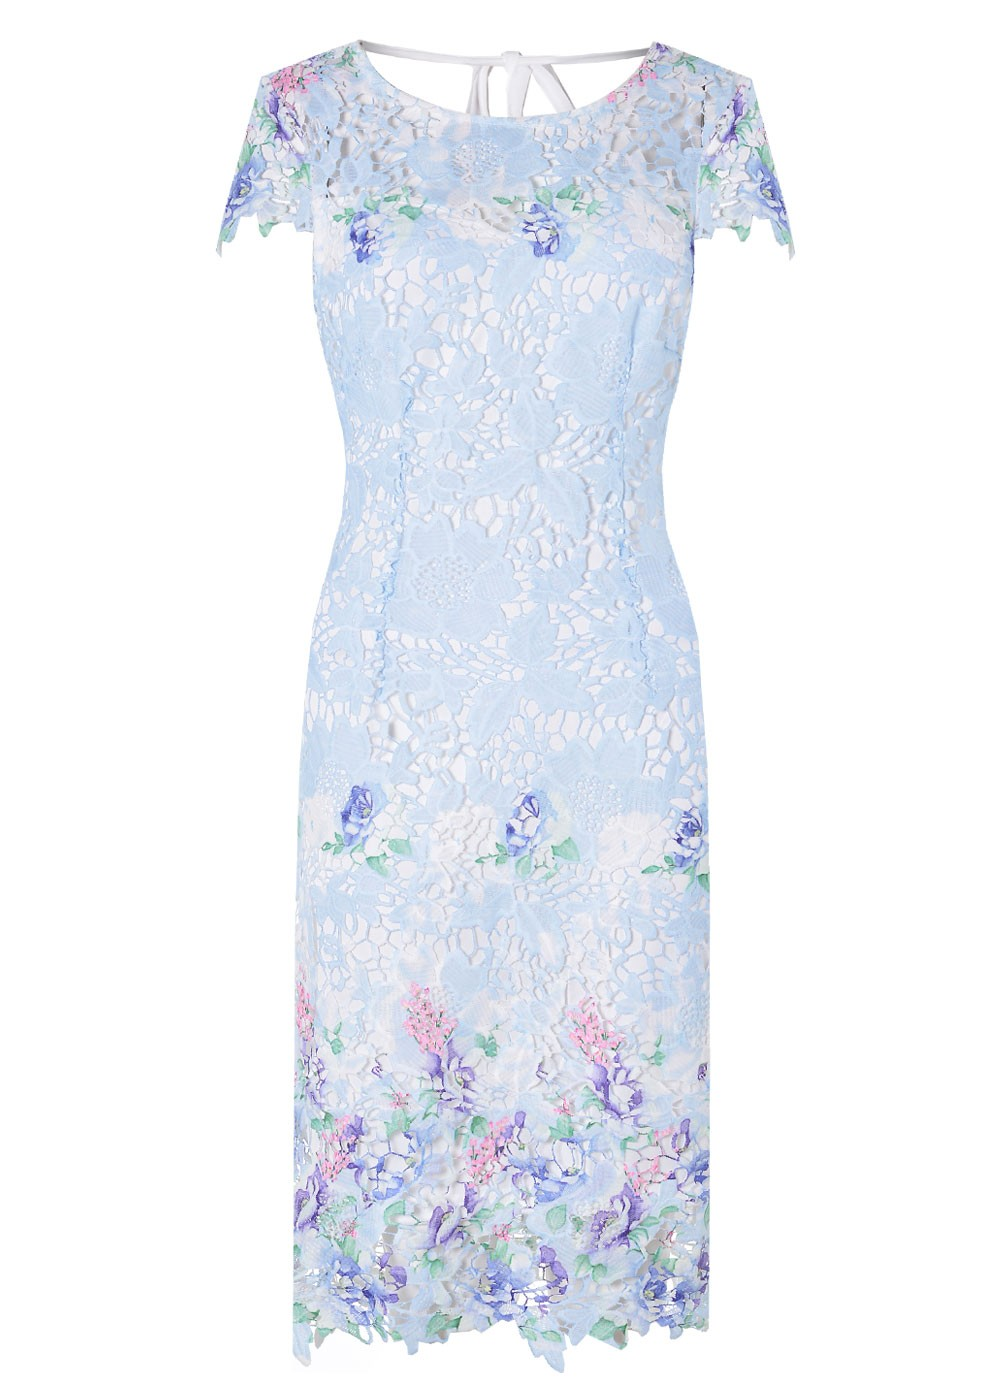 Stella Jess Floral Lace Dress In Light Blue Iclothing